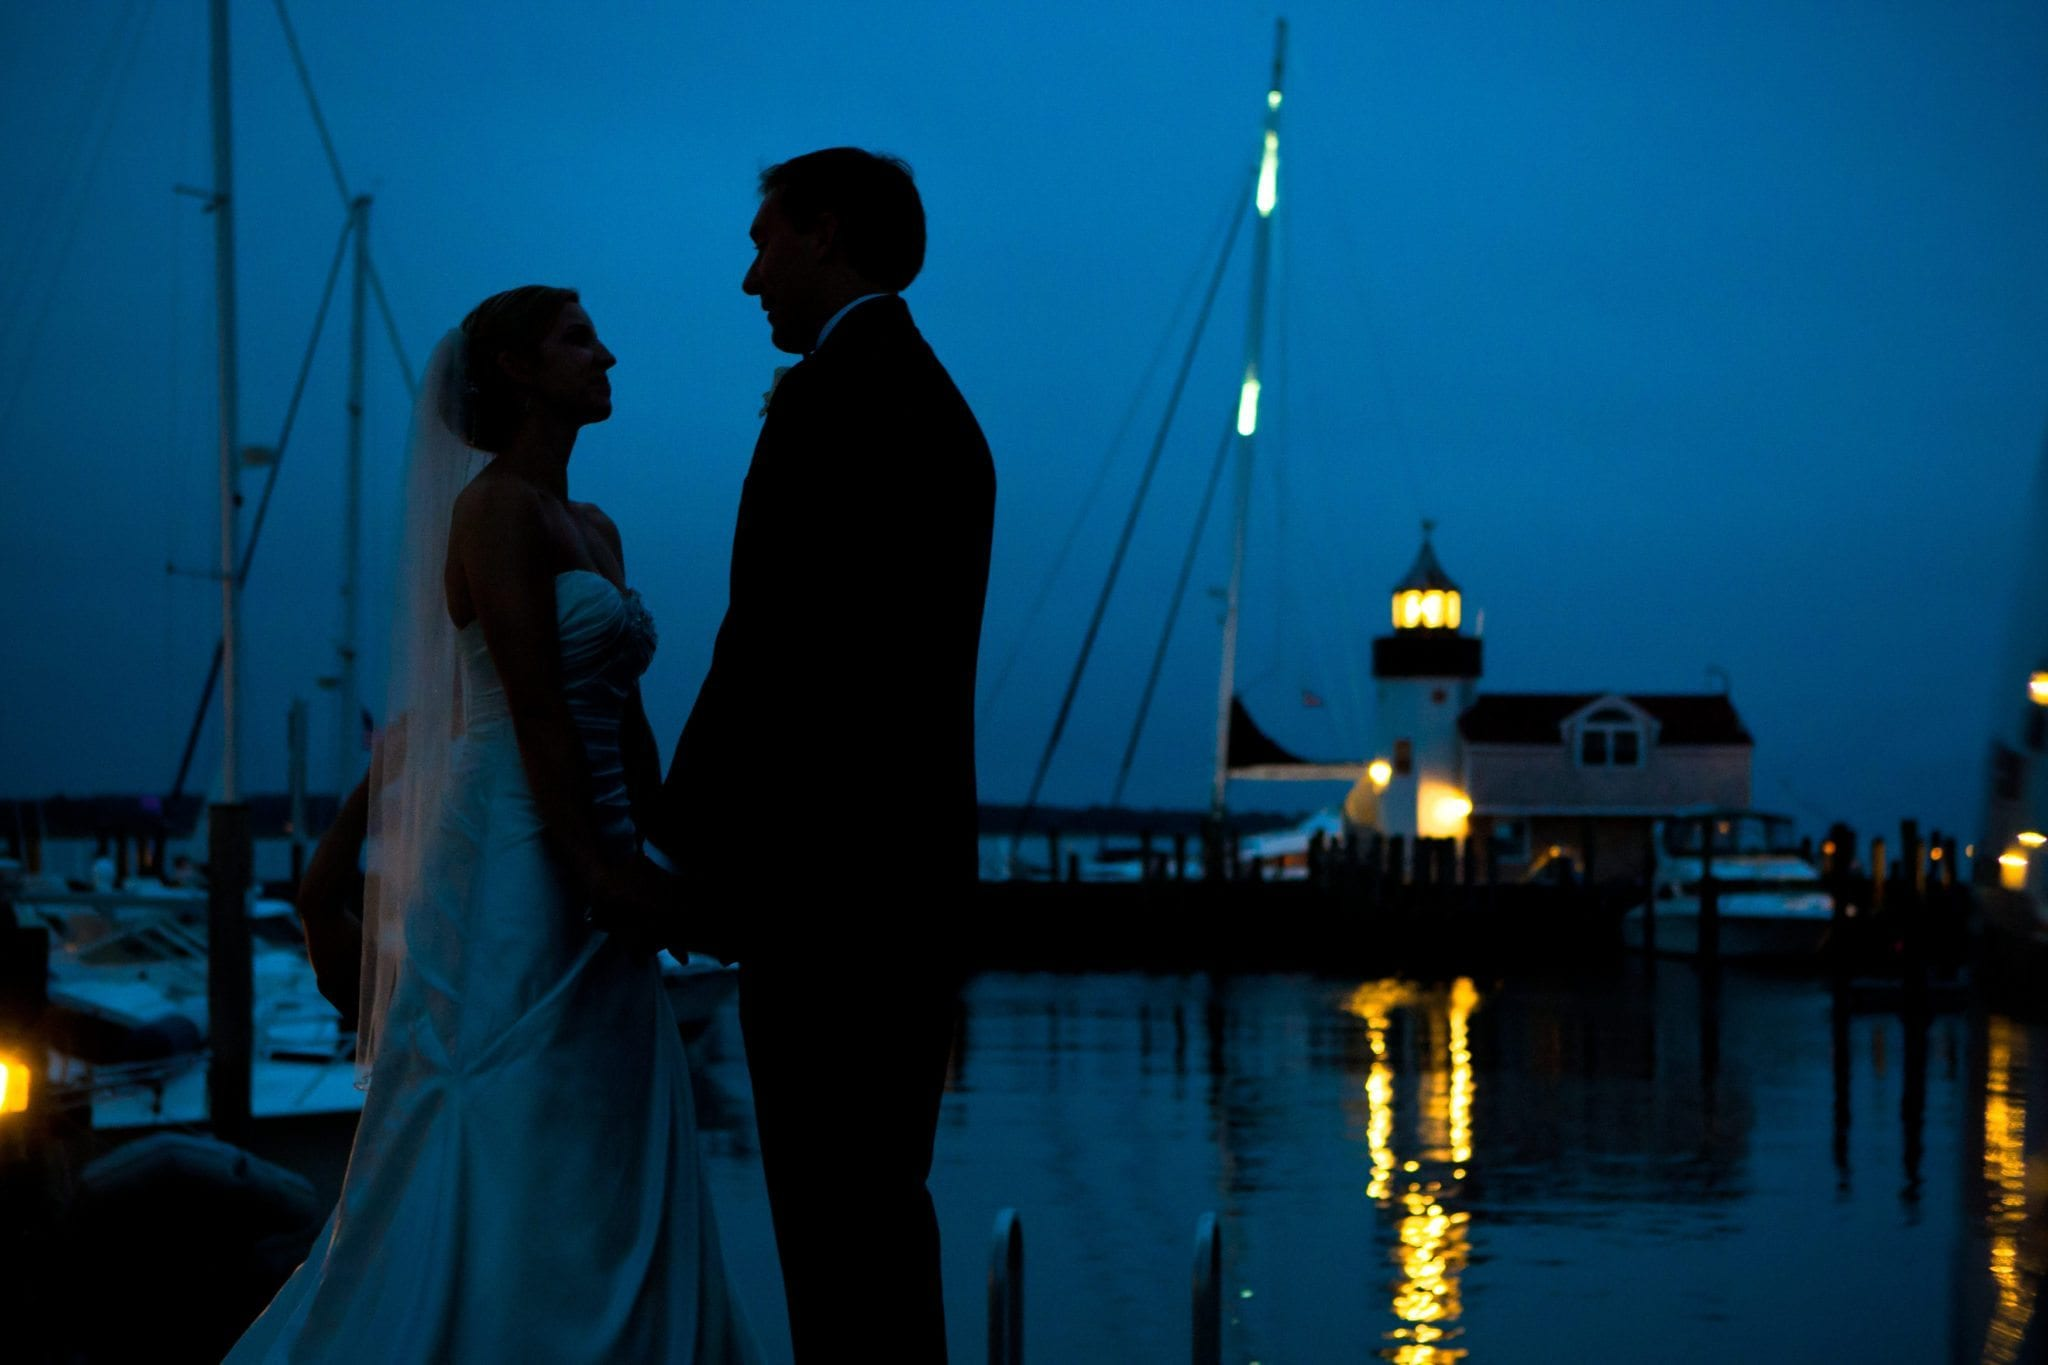 Bride and groom standing near marina at night with lighthouse in background.